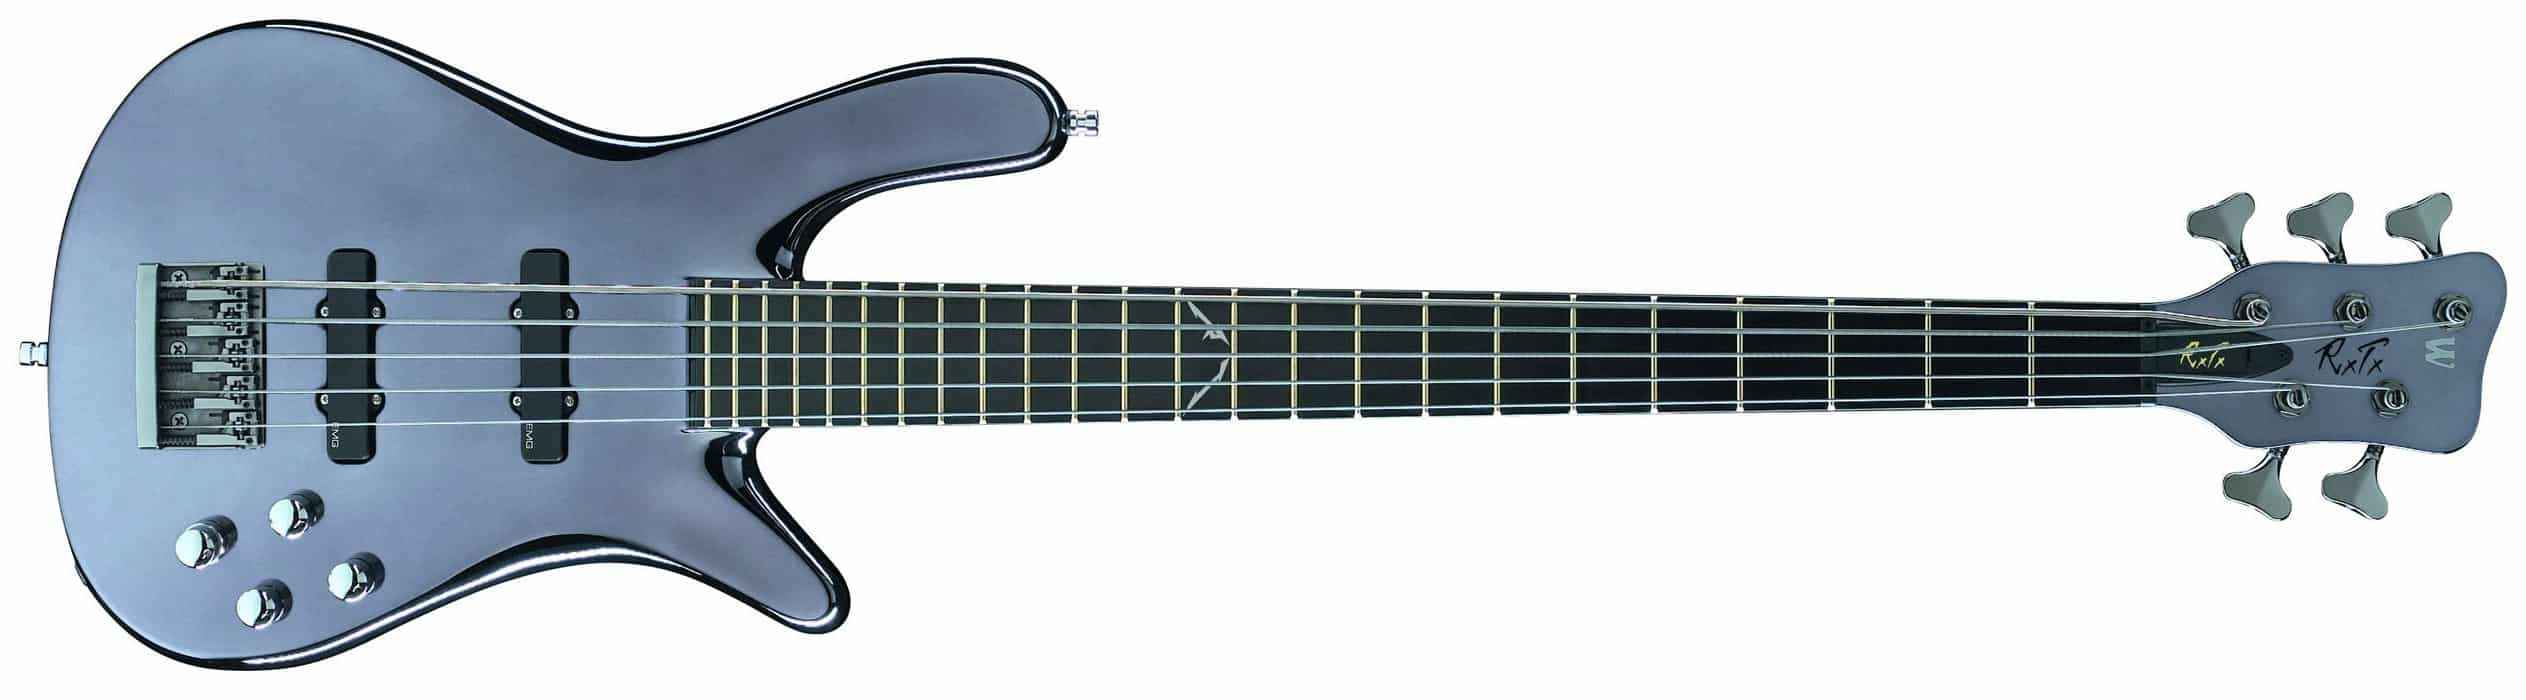 Robert Trujillo Bass Guitar – Warwick Streamer Signature Bass